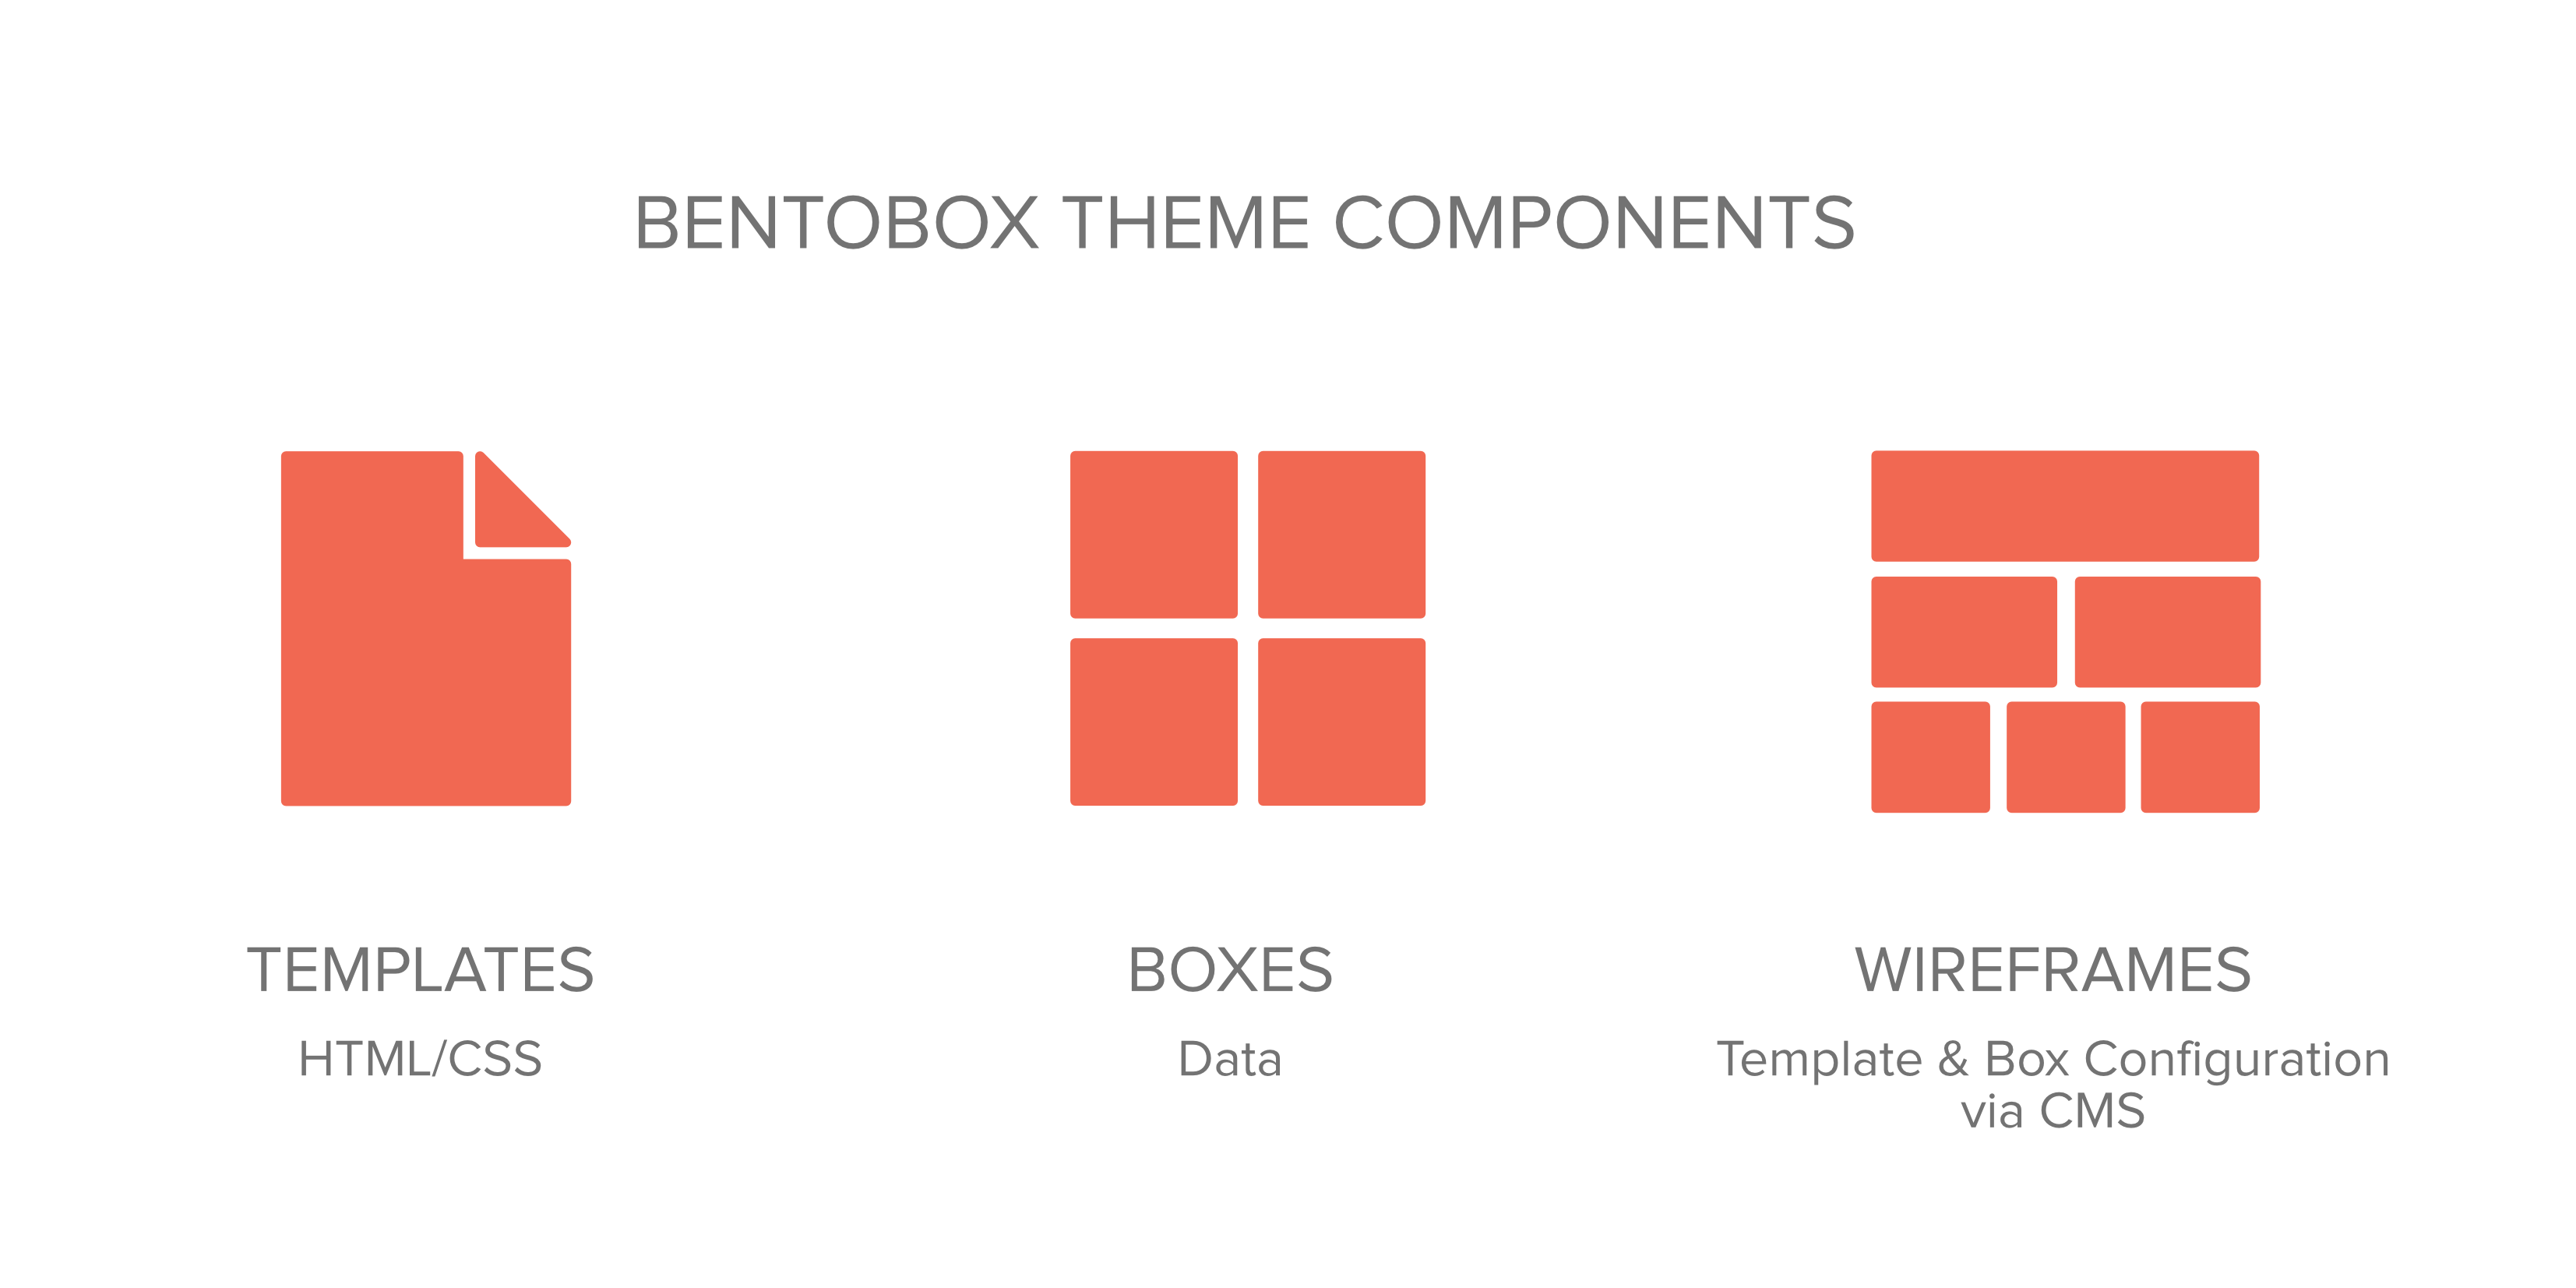 To Develop A Bentobox Theme Three Elements Must Be Carefully Configured